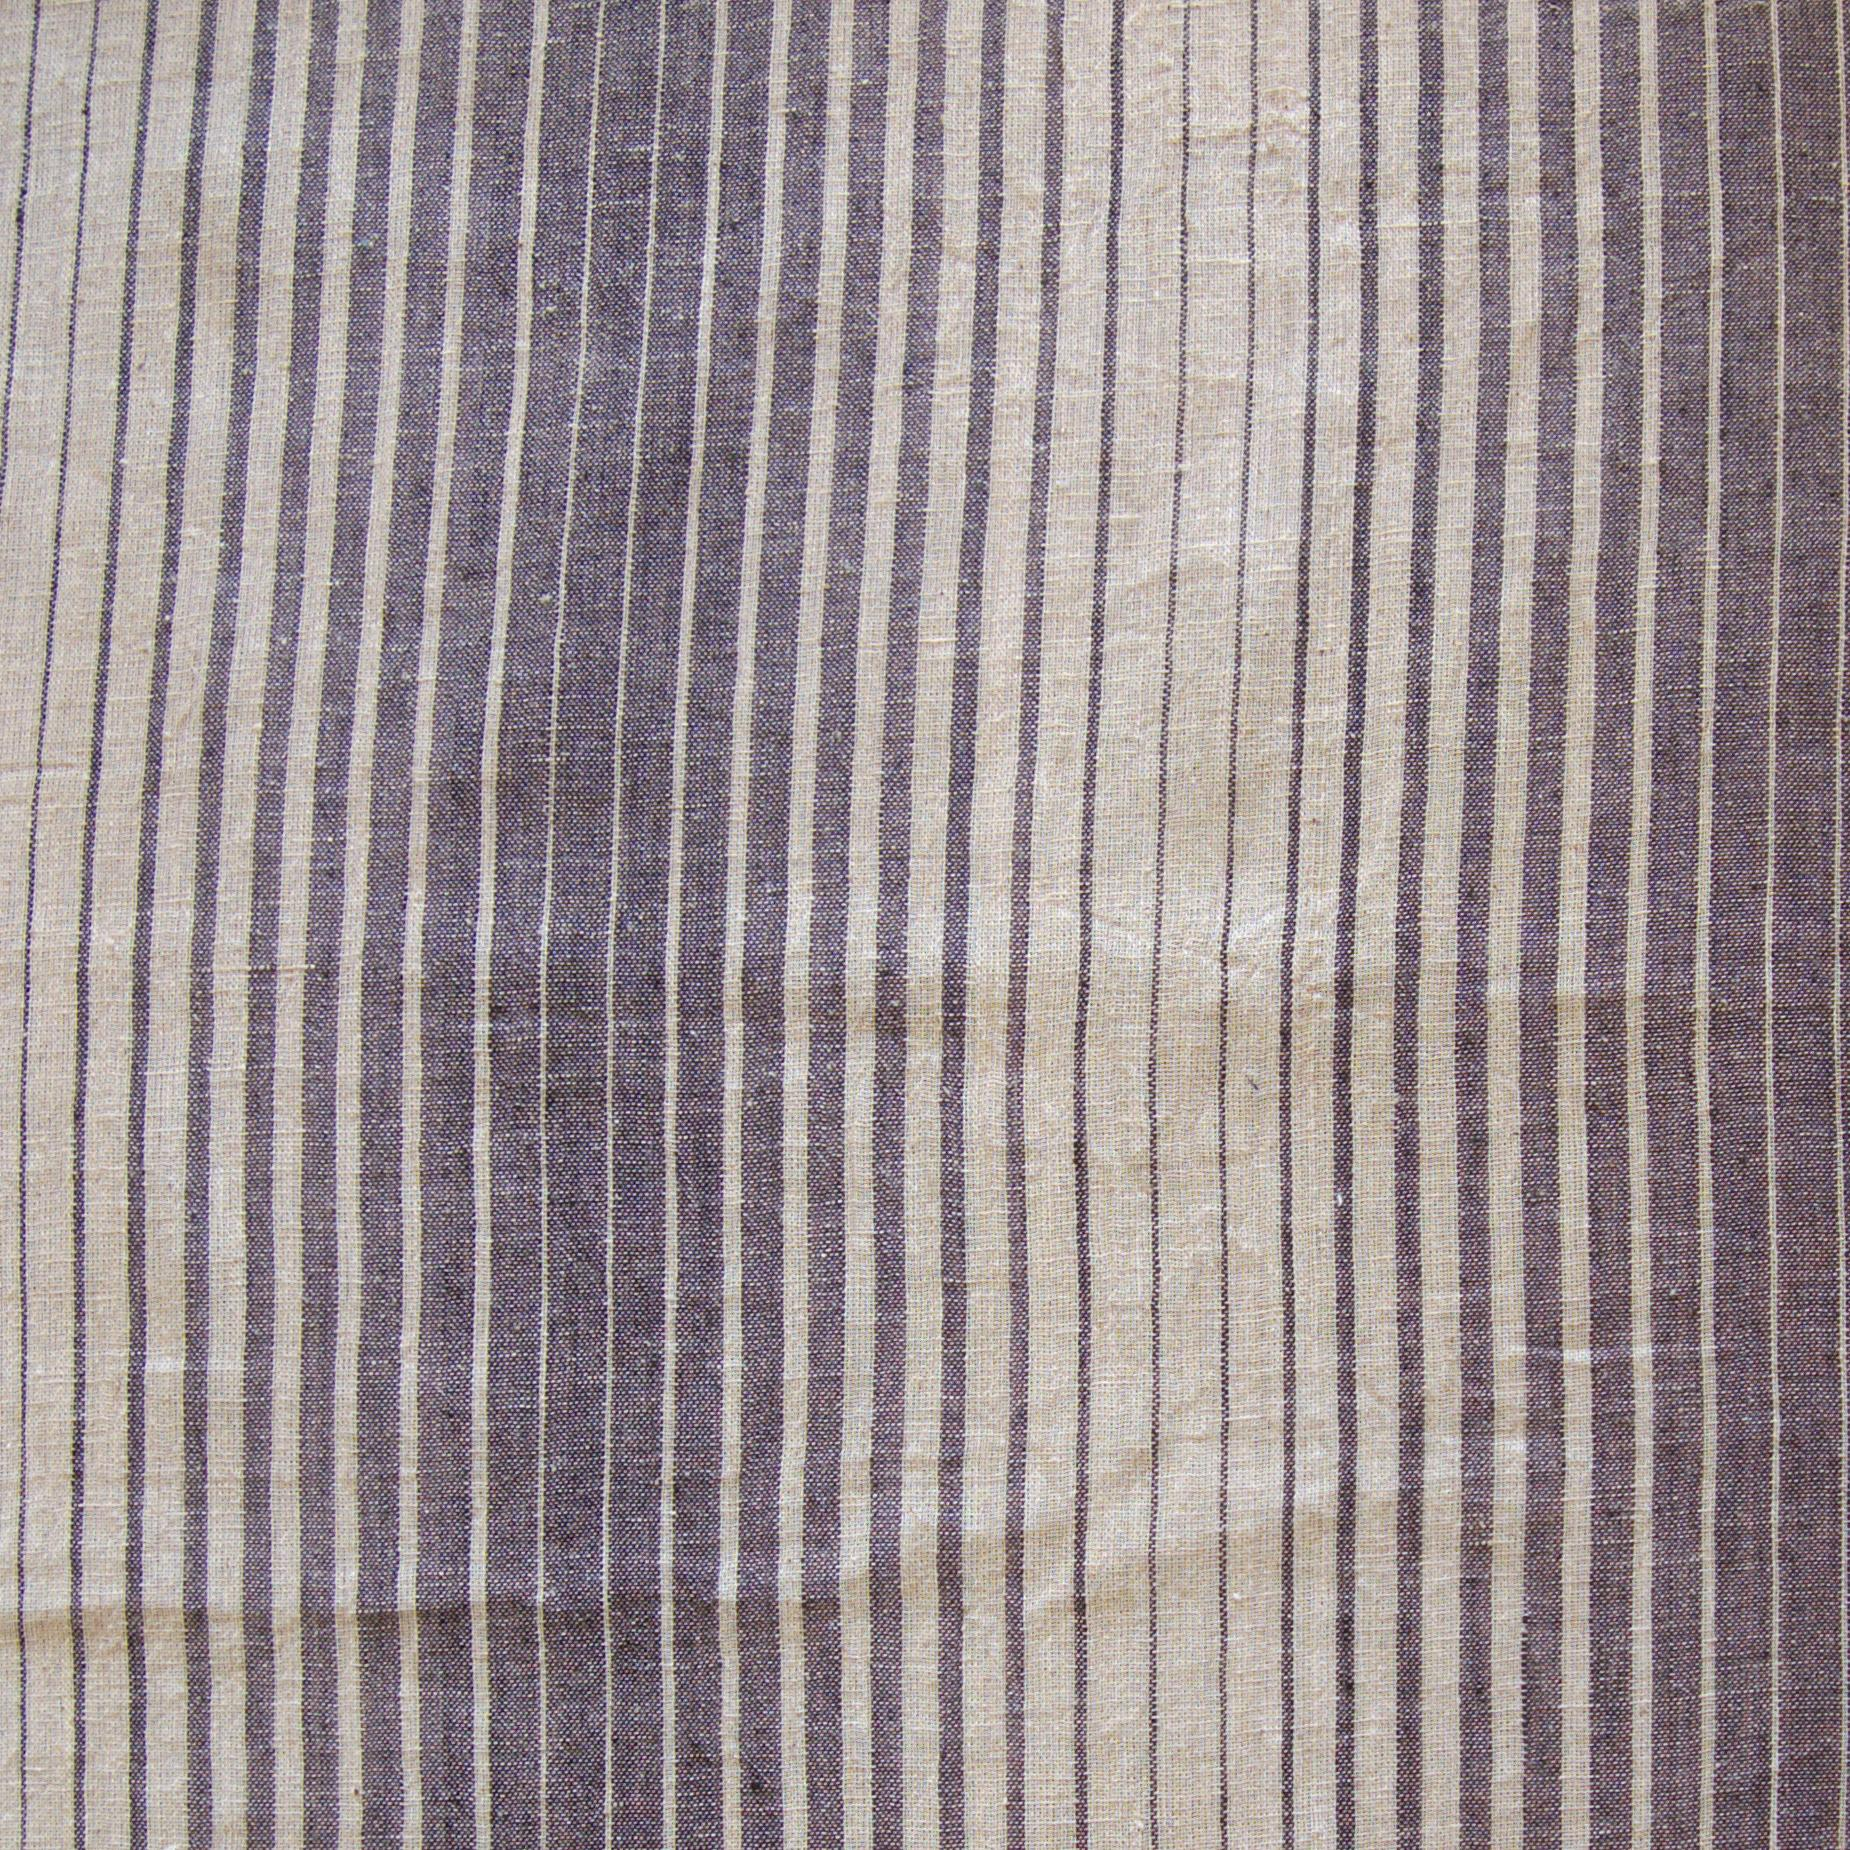 Organic Kala Cotton - Handloom Woven - Natural Dye - Charcoal Black - Fading Stripes - One By One - Flat